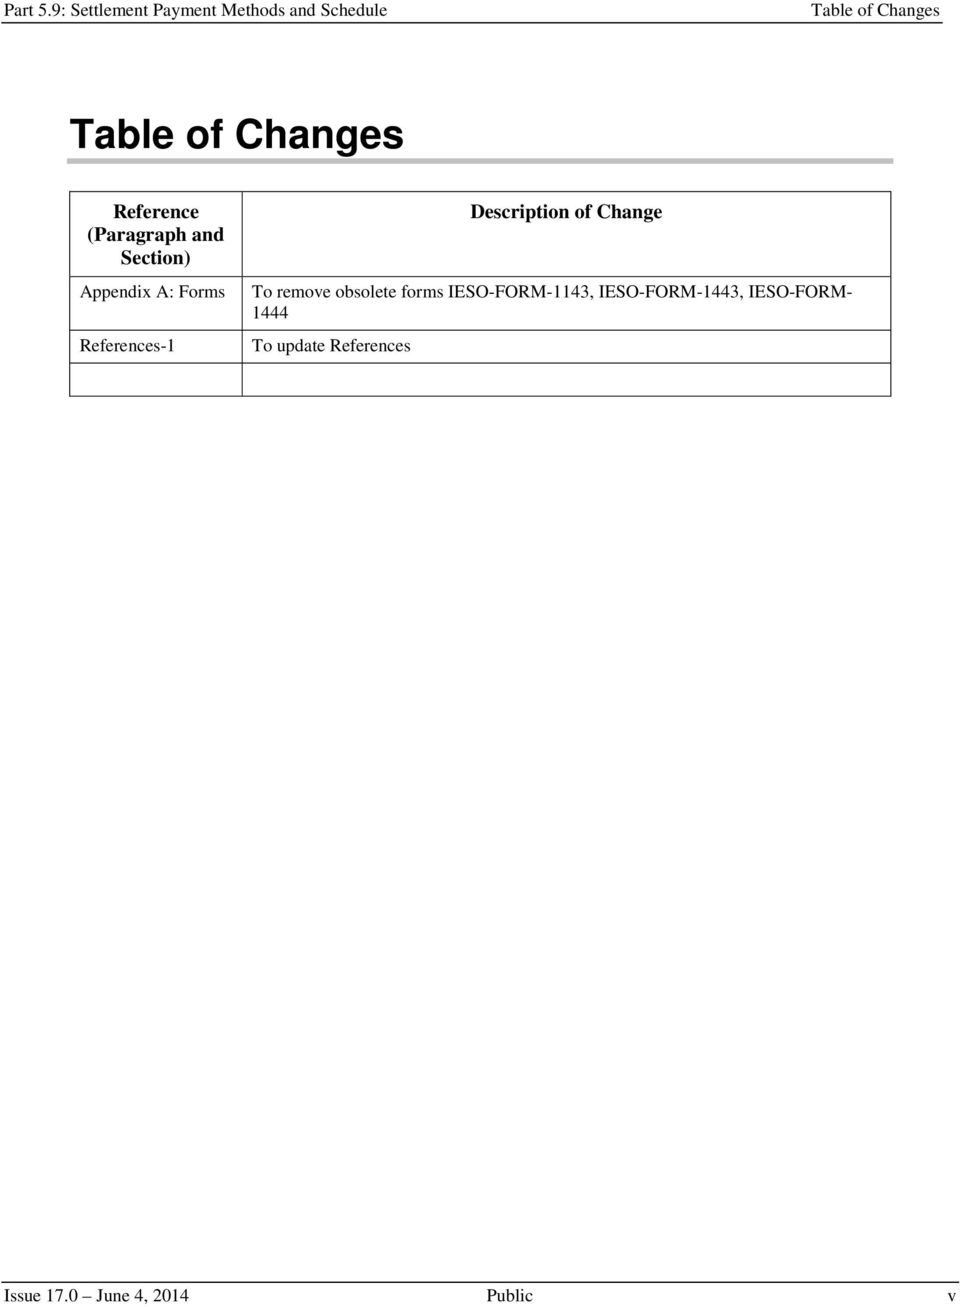 To remove obsolete forms IESO-FORM-1143, IESO-FORM-1443,